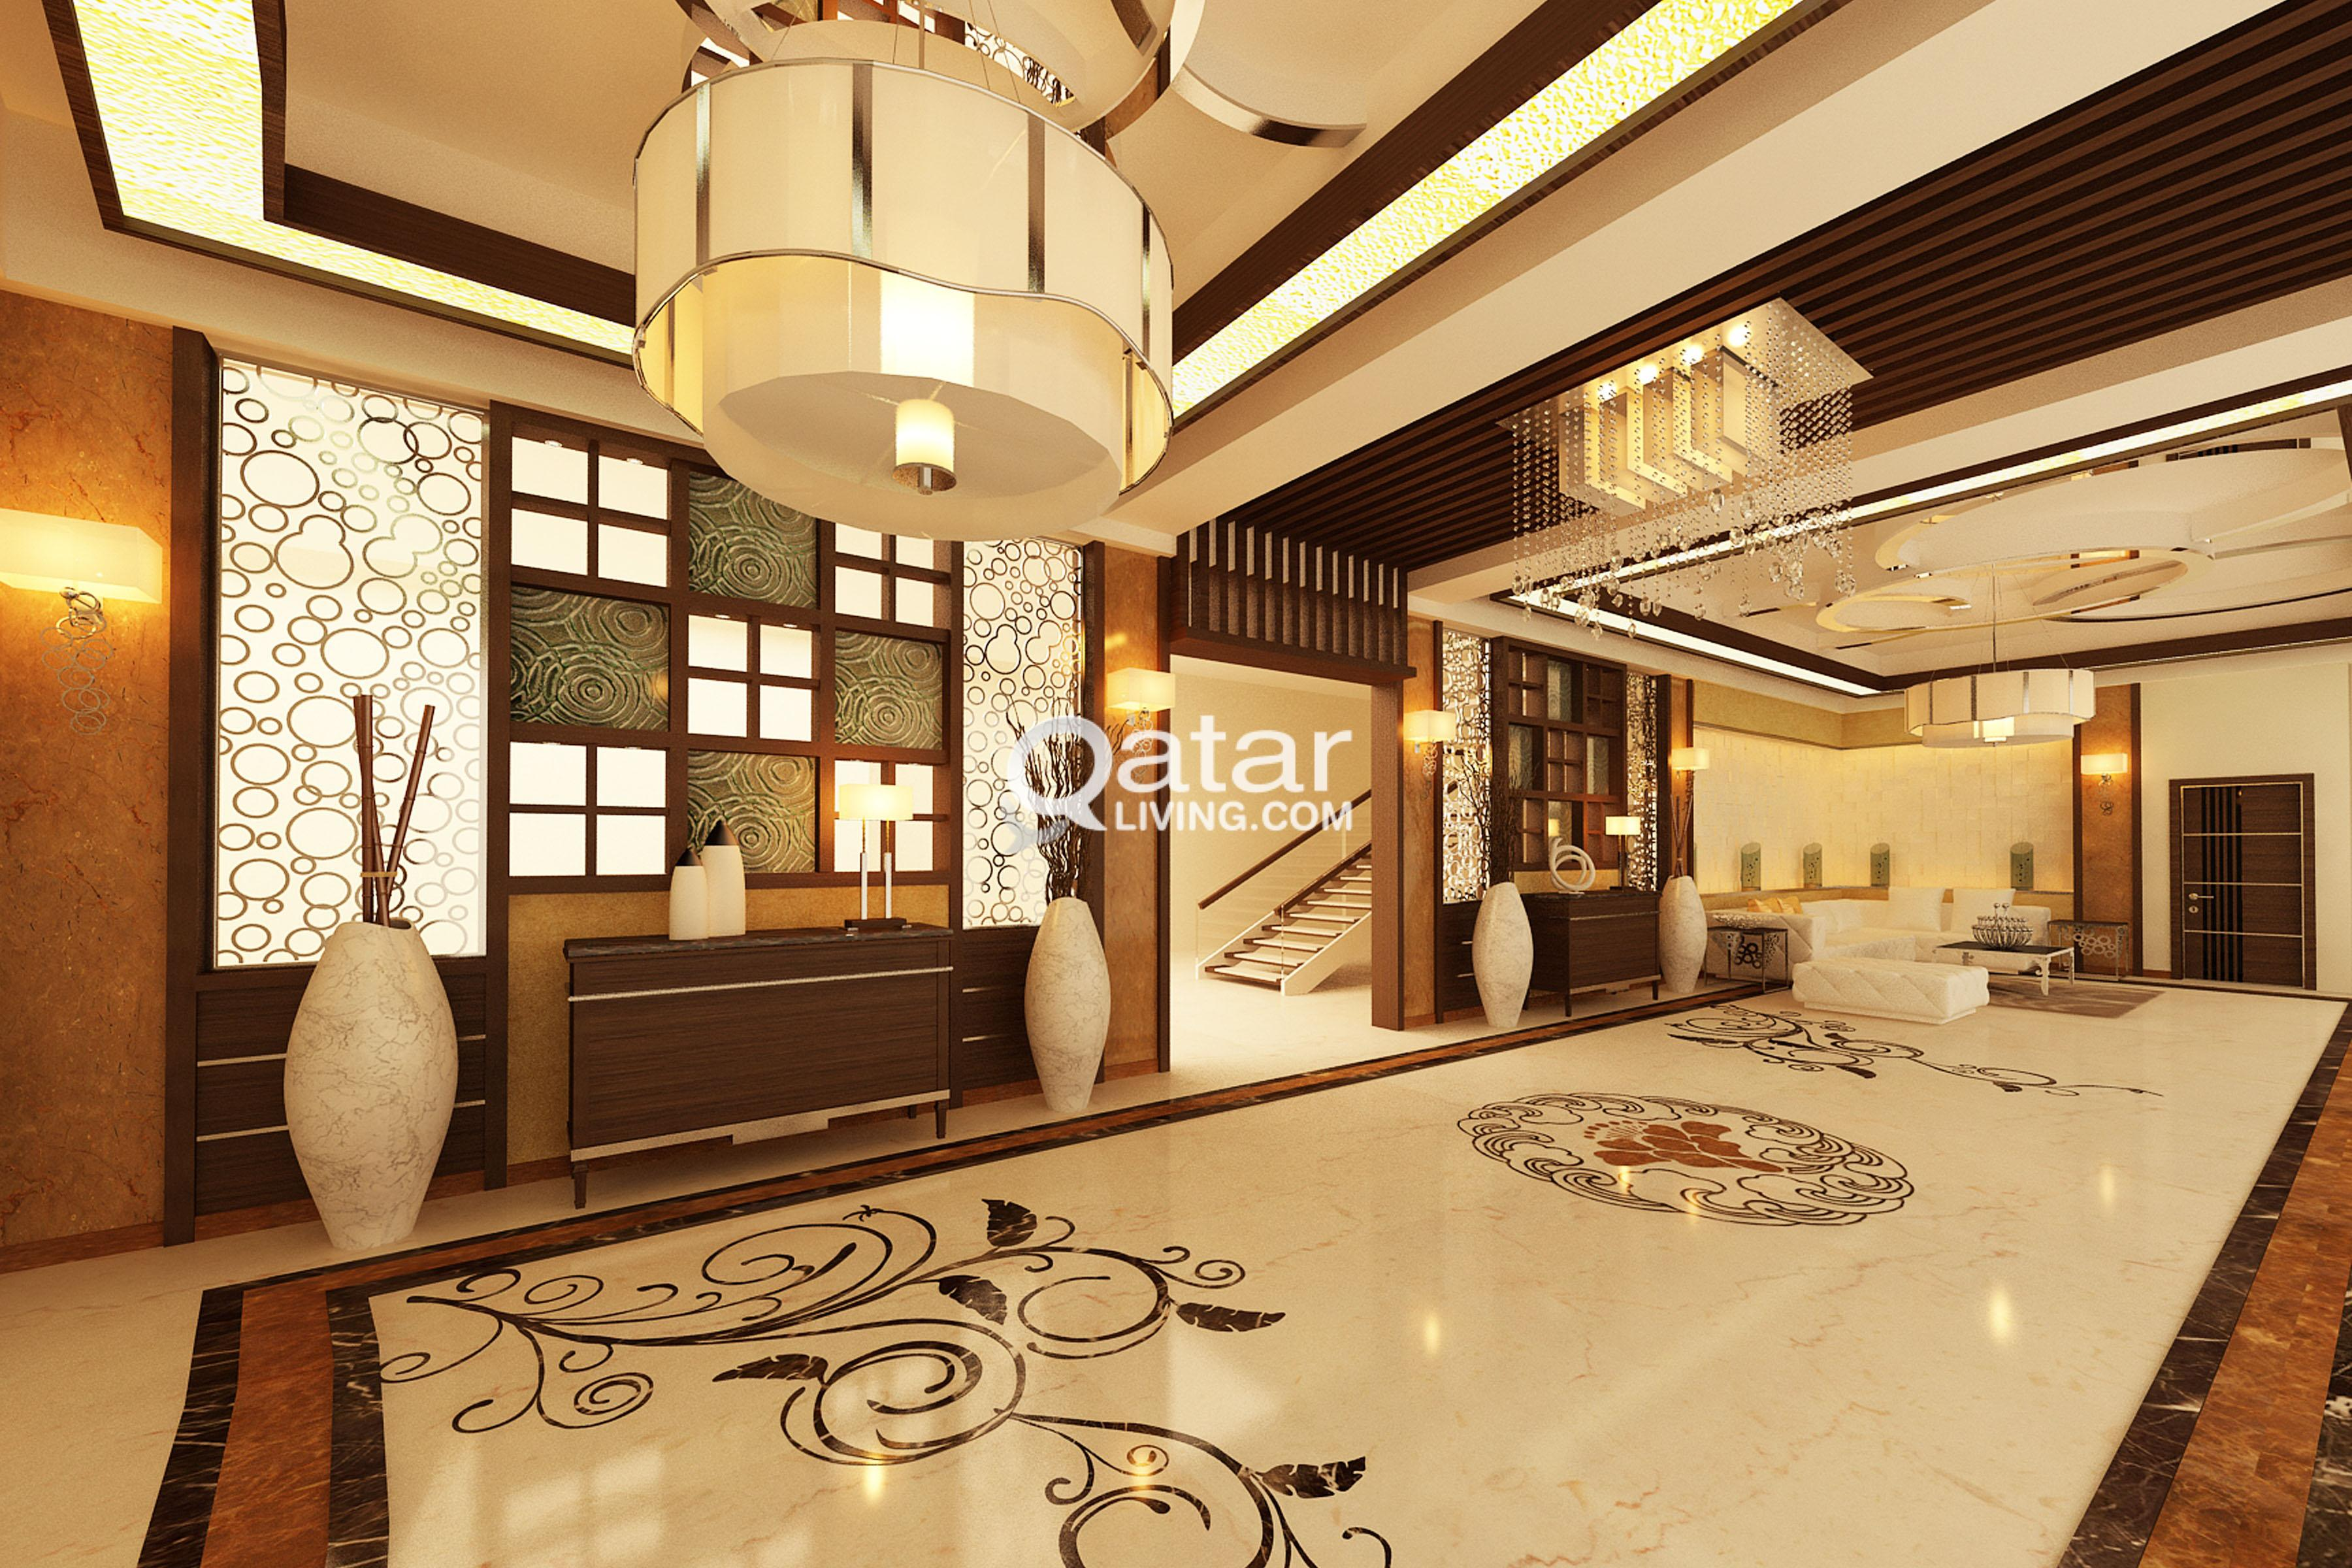 3d visualizer interior designer qatar living